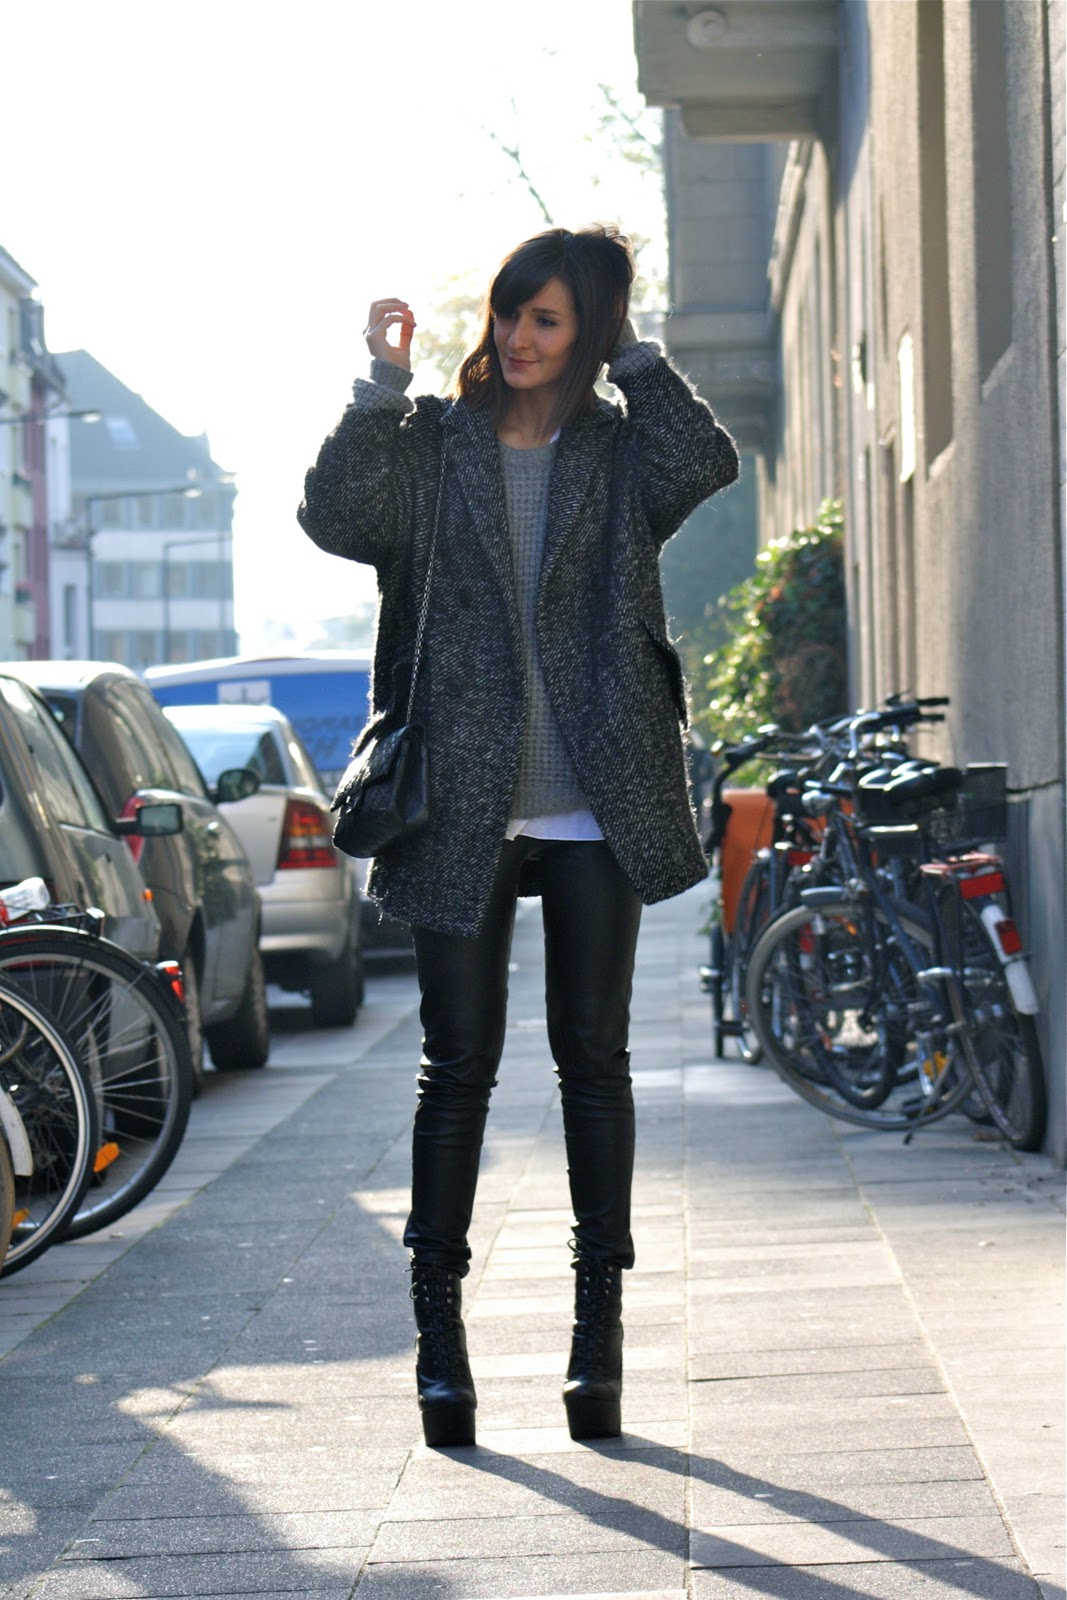 overize coat Coat Styles For Winter 2013! What To Wear?